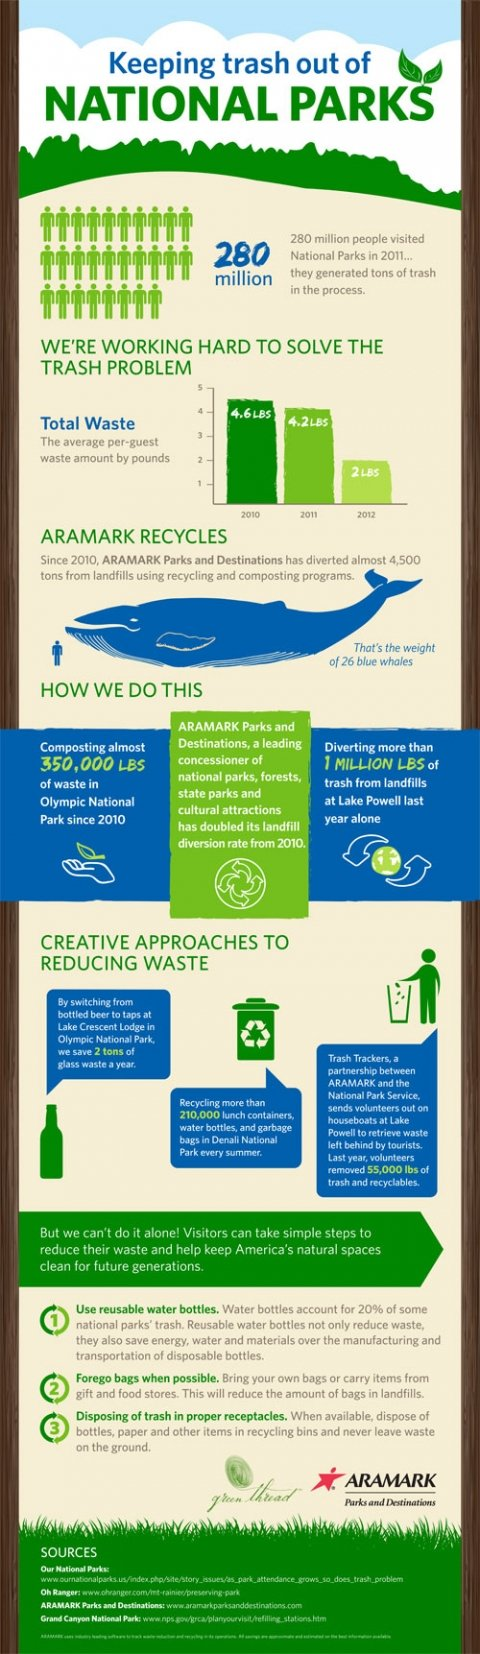 Keep Trash out of National Parks Infographic